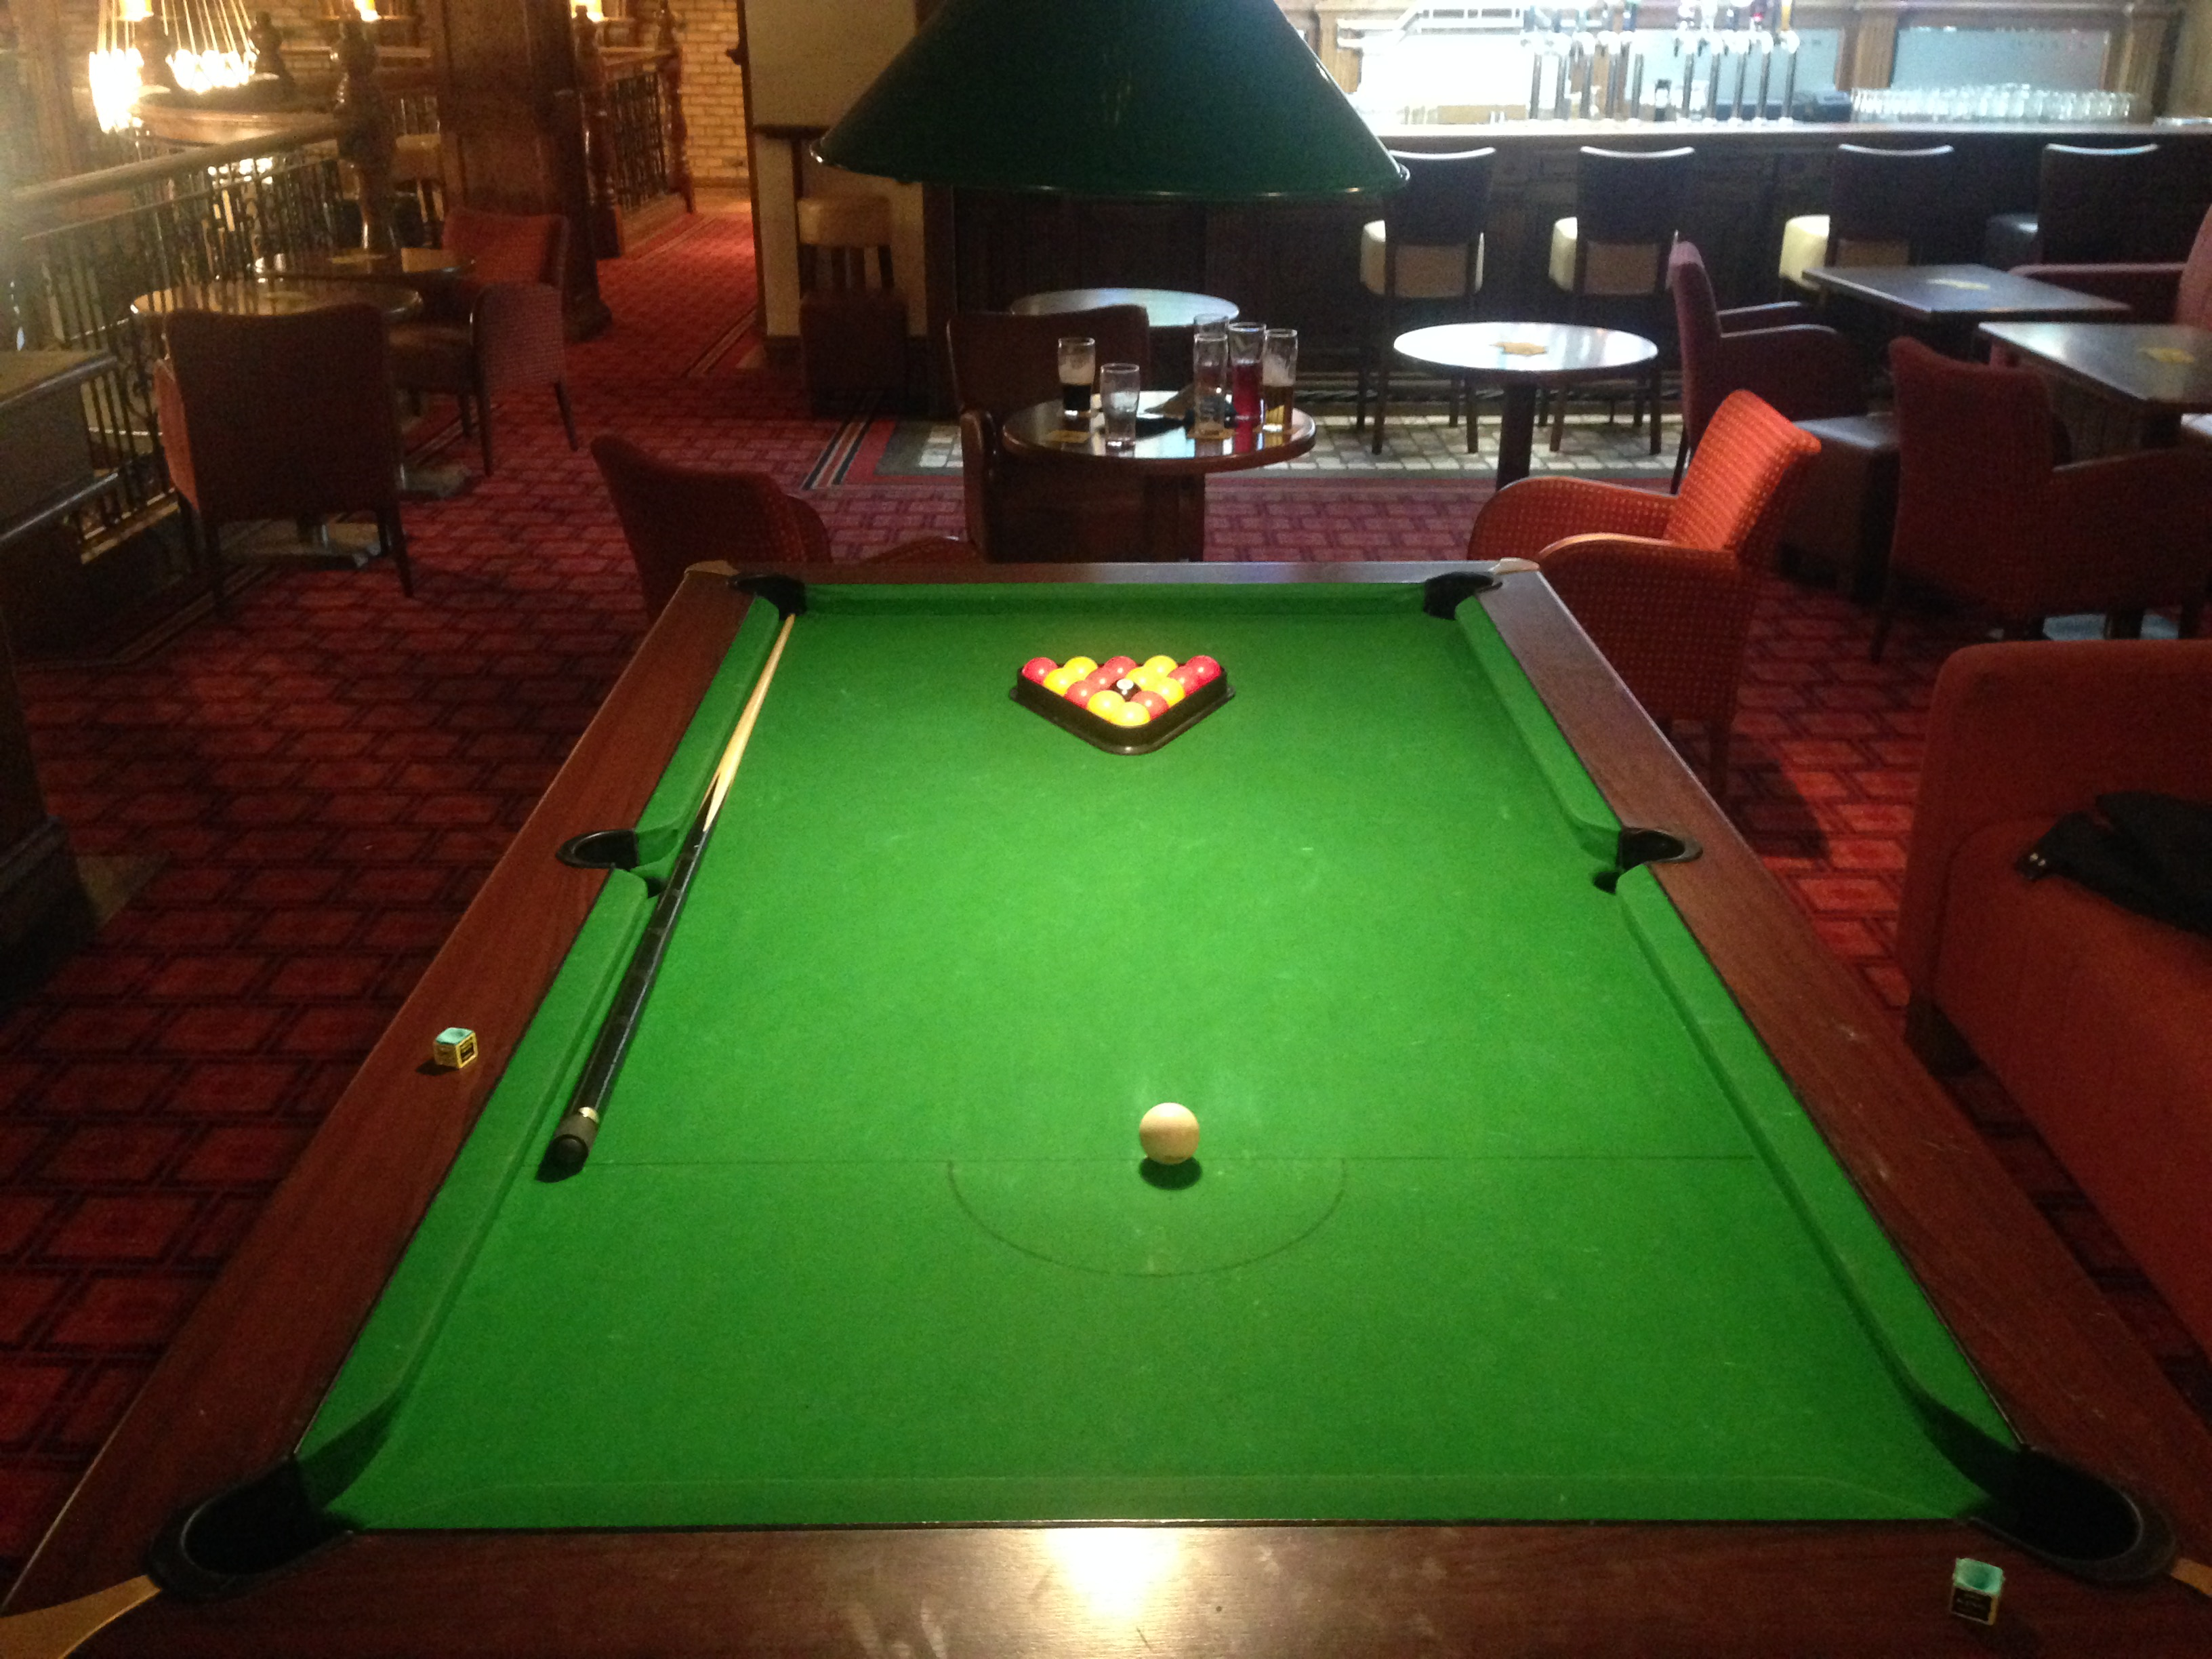 Pubs with pool tables images table decoration ideas pubs with pool tables in dublin publin pubs with pool tables in dublin watchthetrailerfo watchthetrailerfo